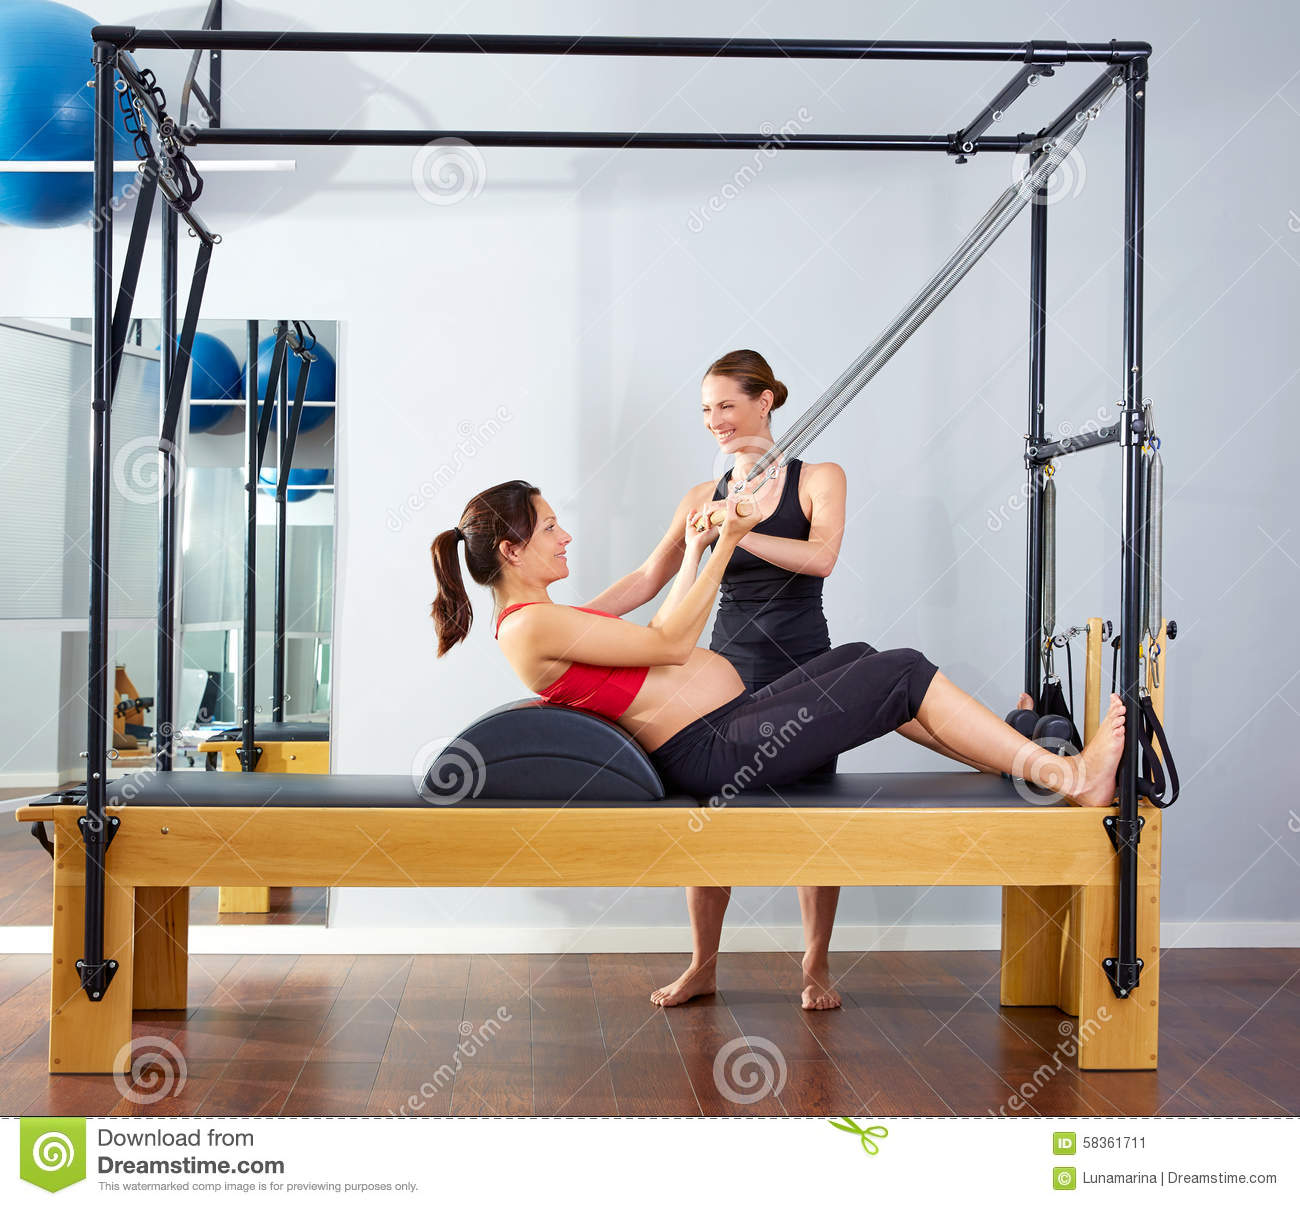 Cadillac Pilates: Pregnant Woman Pilates Reformer Roll Up Exercise Stock Photo